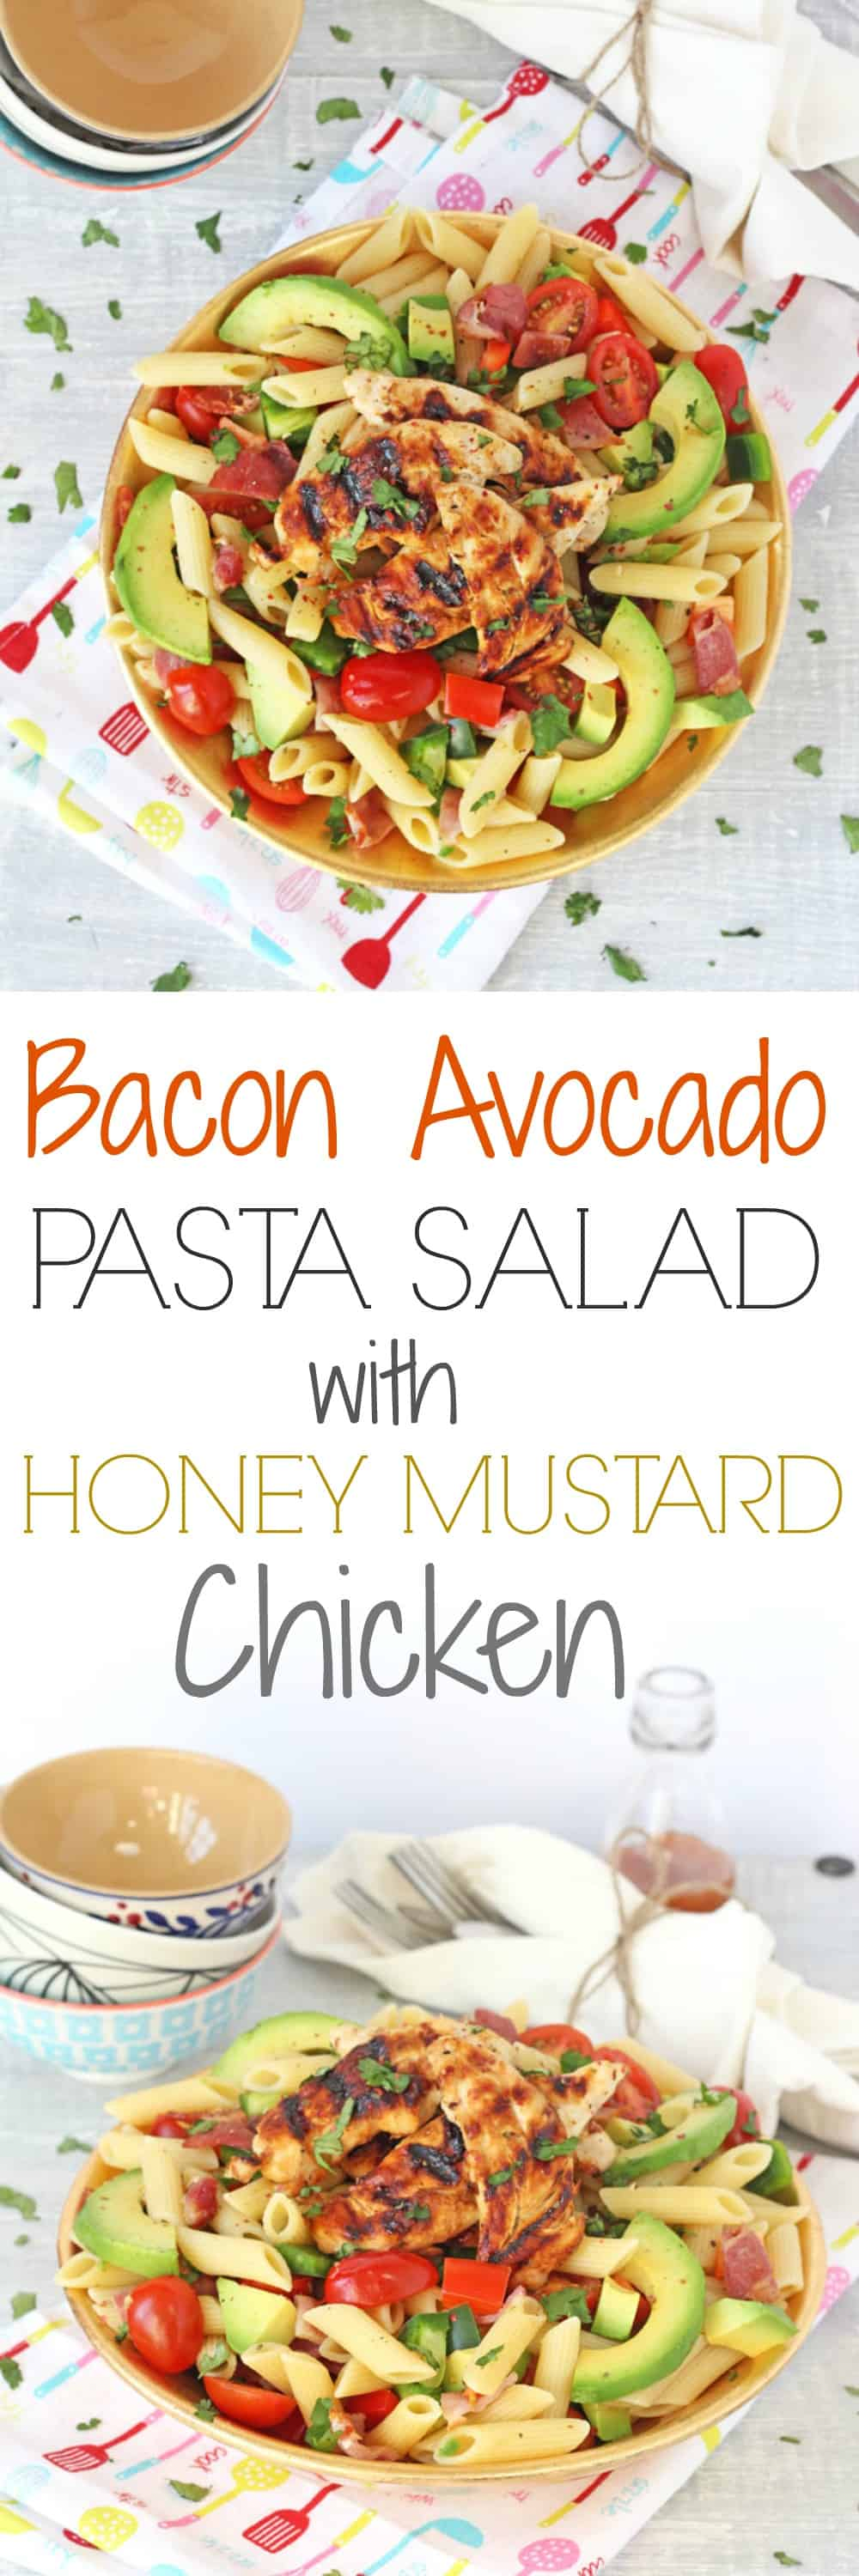 Honey Mustard Chicken Avocado Salad – Recipesbnb